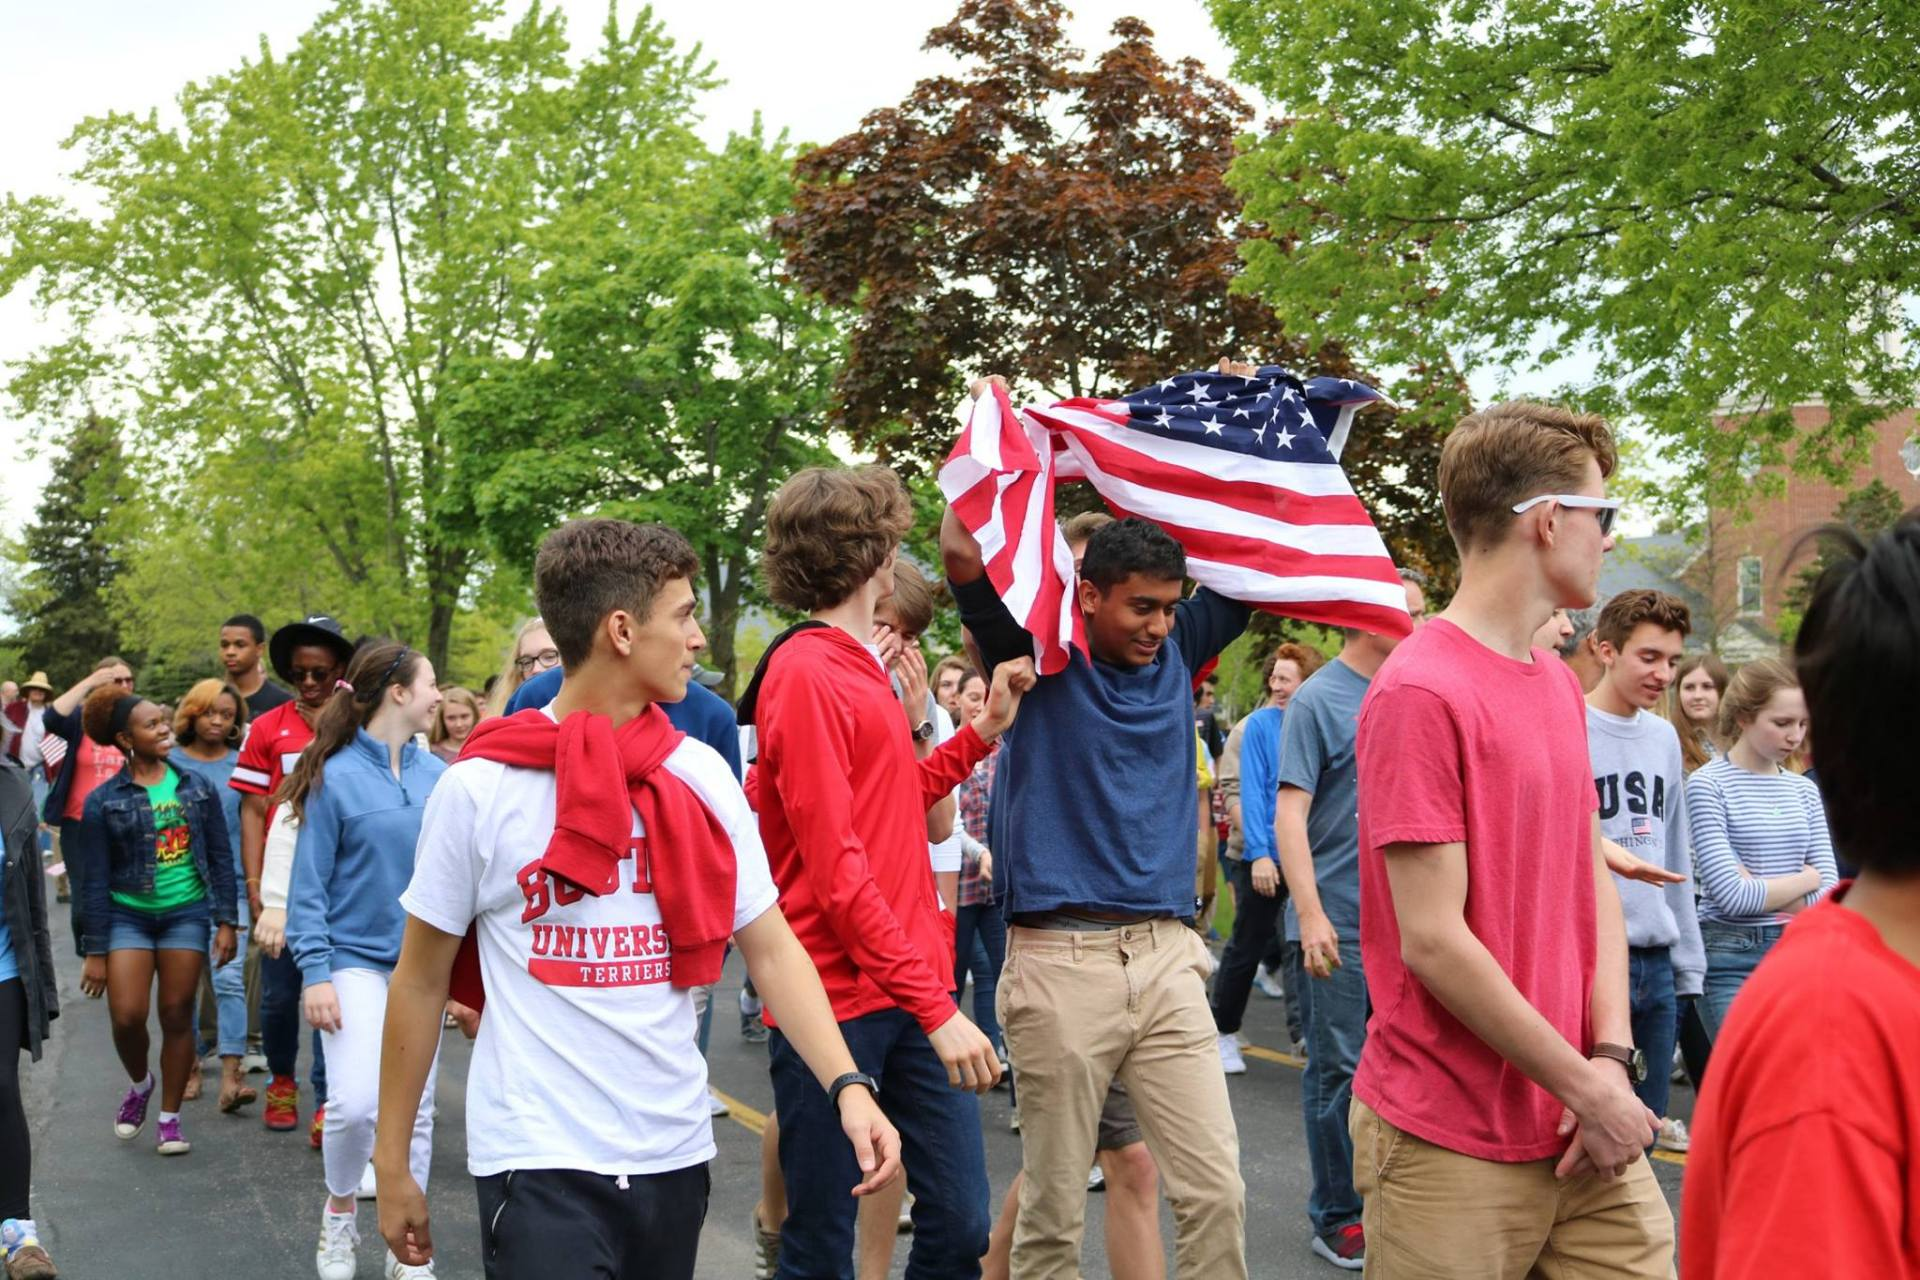 Students drape the American flag over their shoulders during the March to the Memorials celebration.